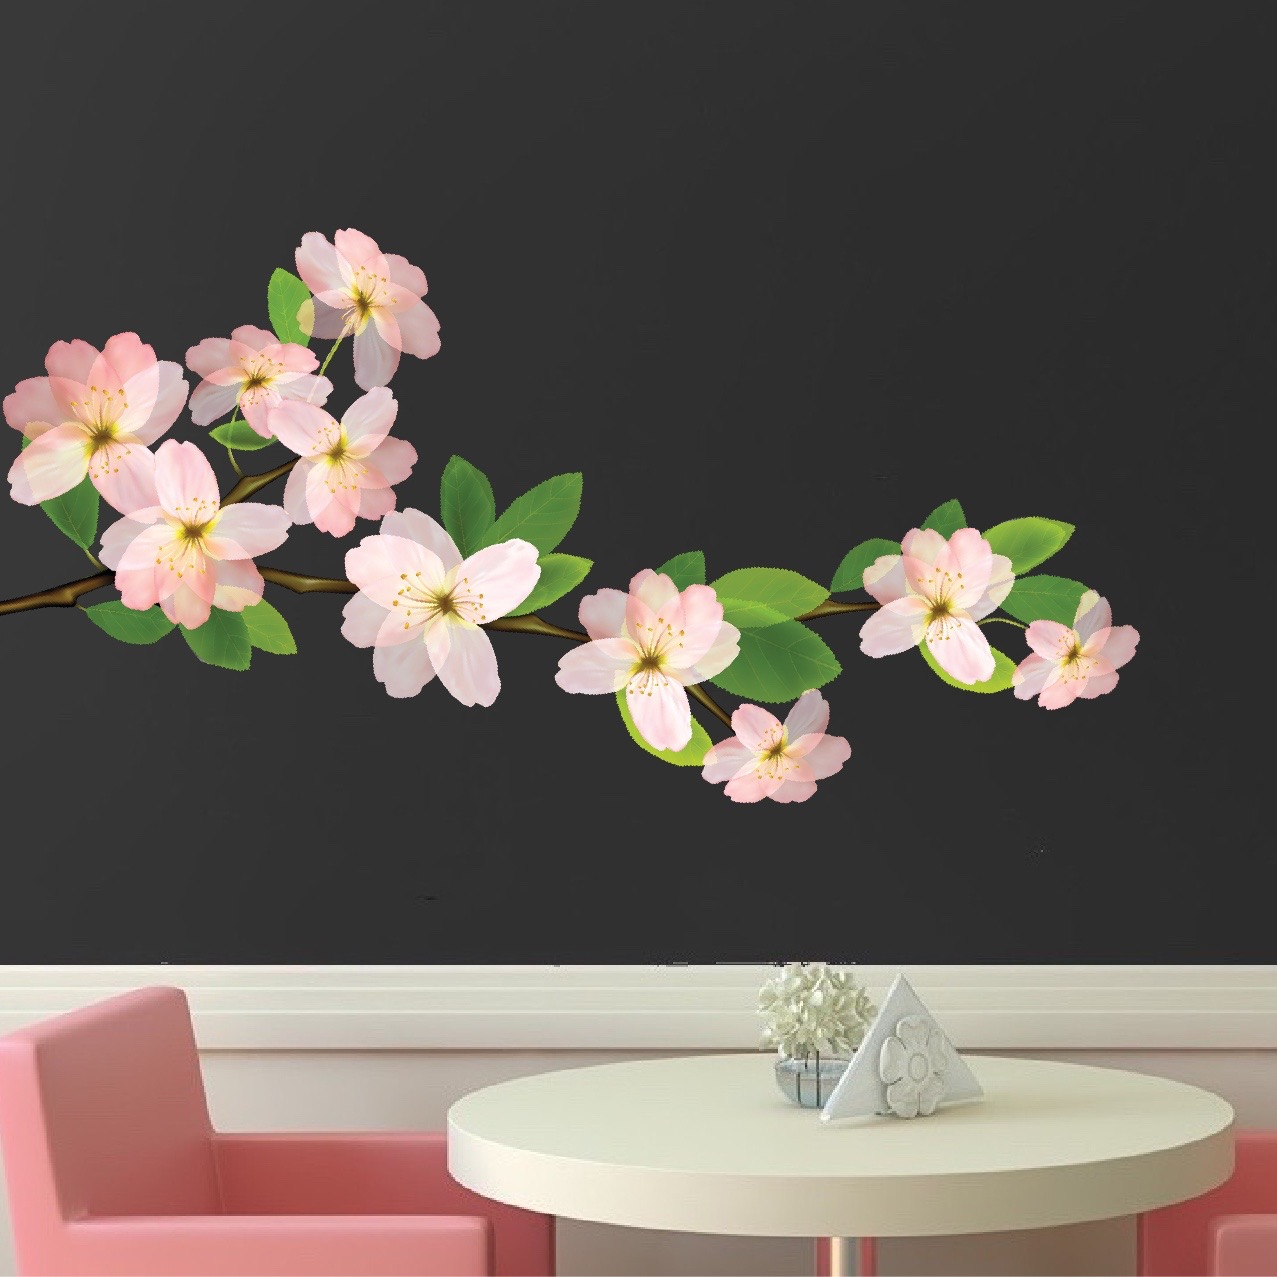 bedroom flower wall decals floral wall decal murals primedecals beautiful flower branch wall decal